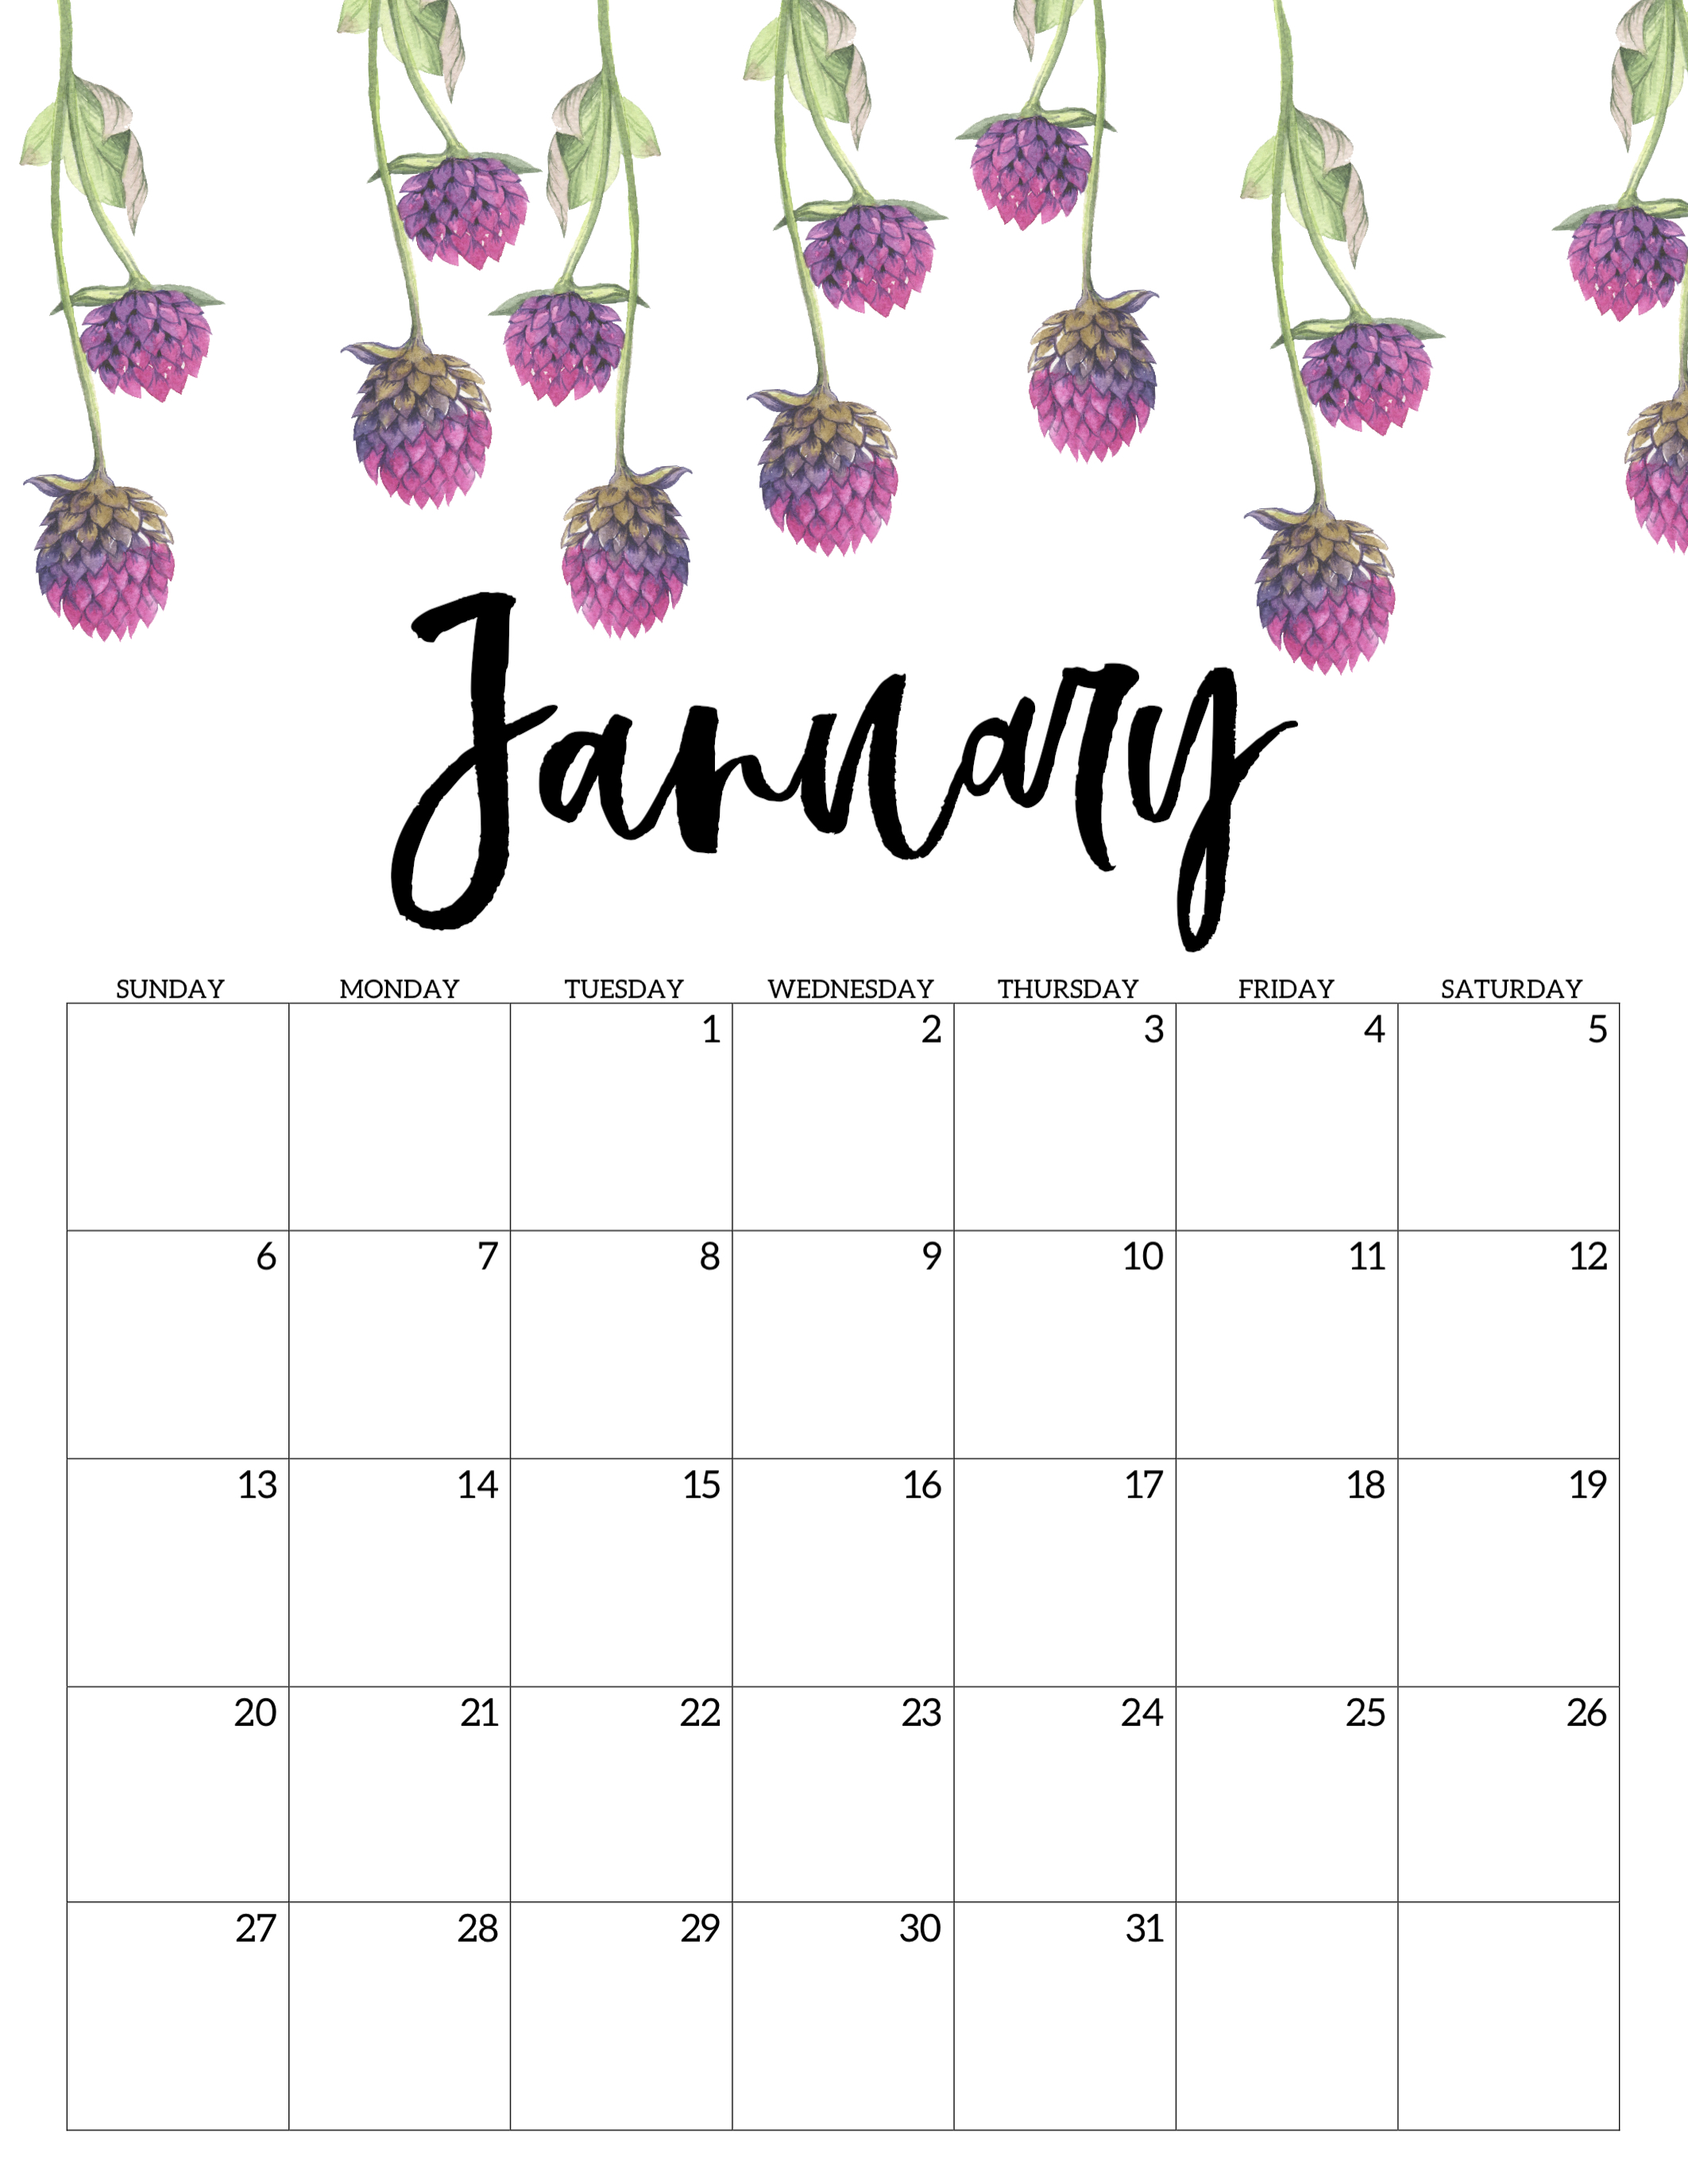 click the following links to print the free printable calendar 2019 floral